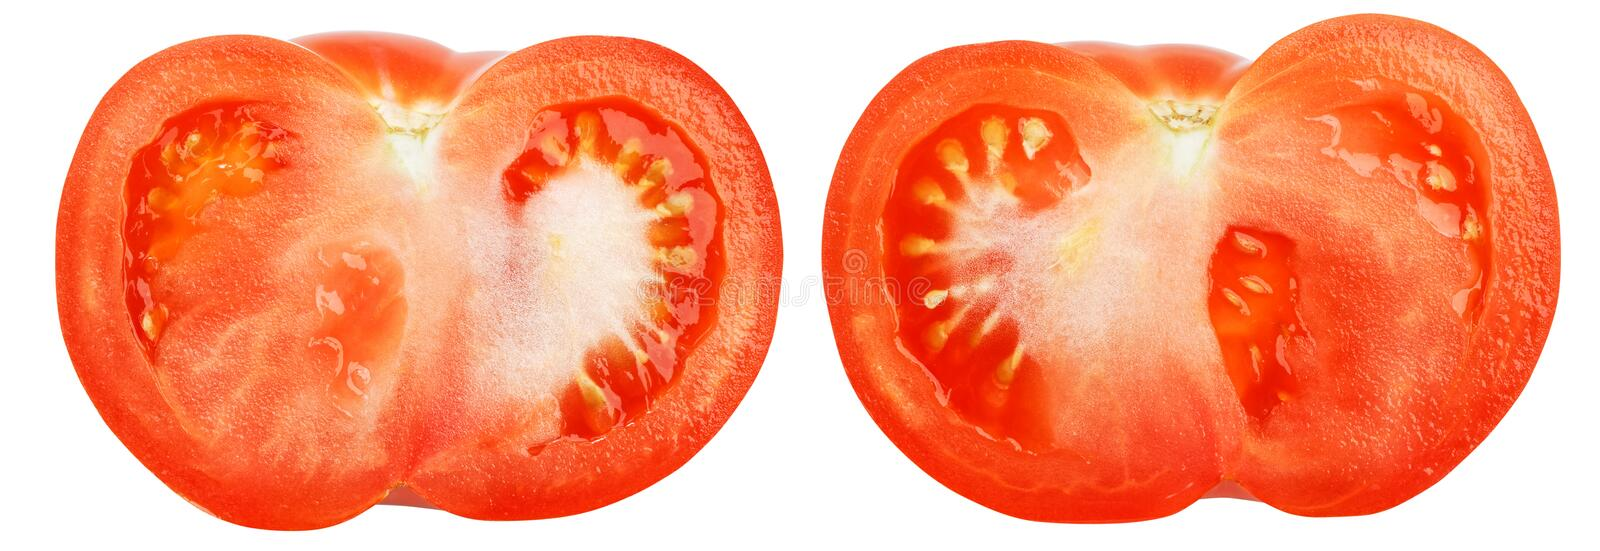 Closeup two half ripe red tomatoes isolated on white stock photos